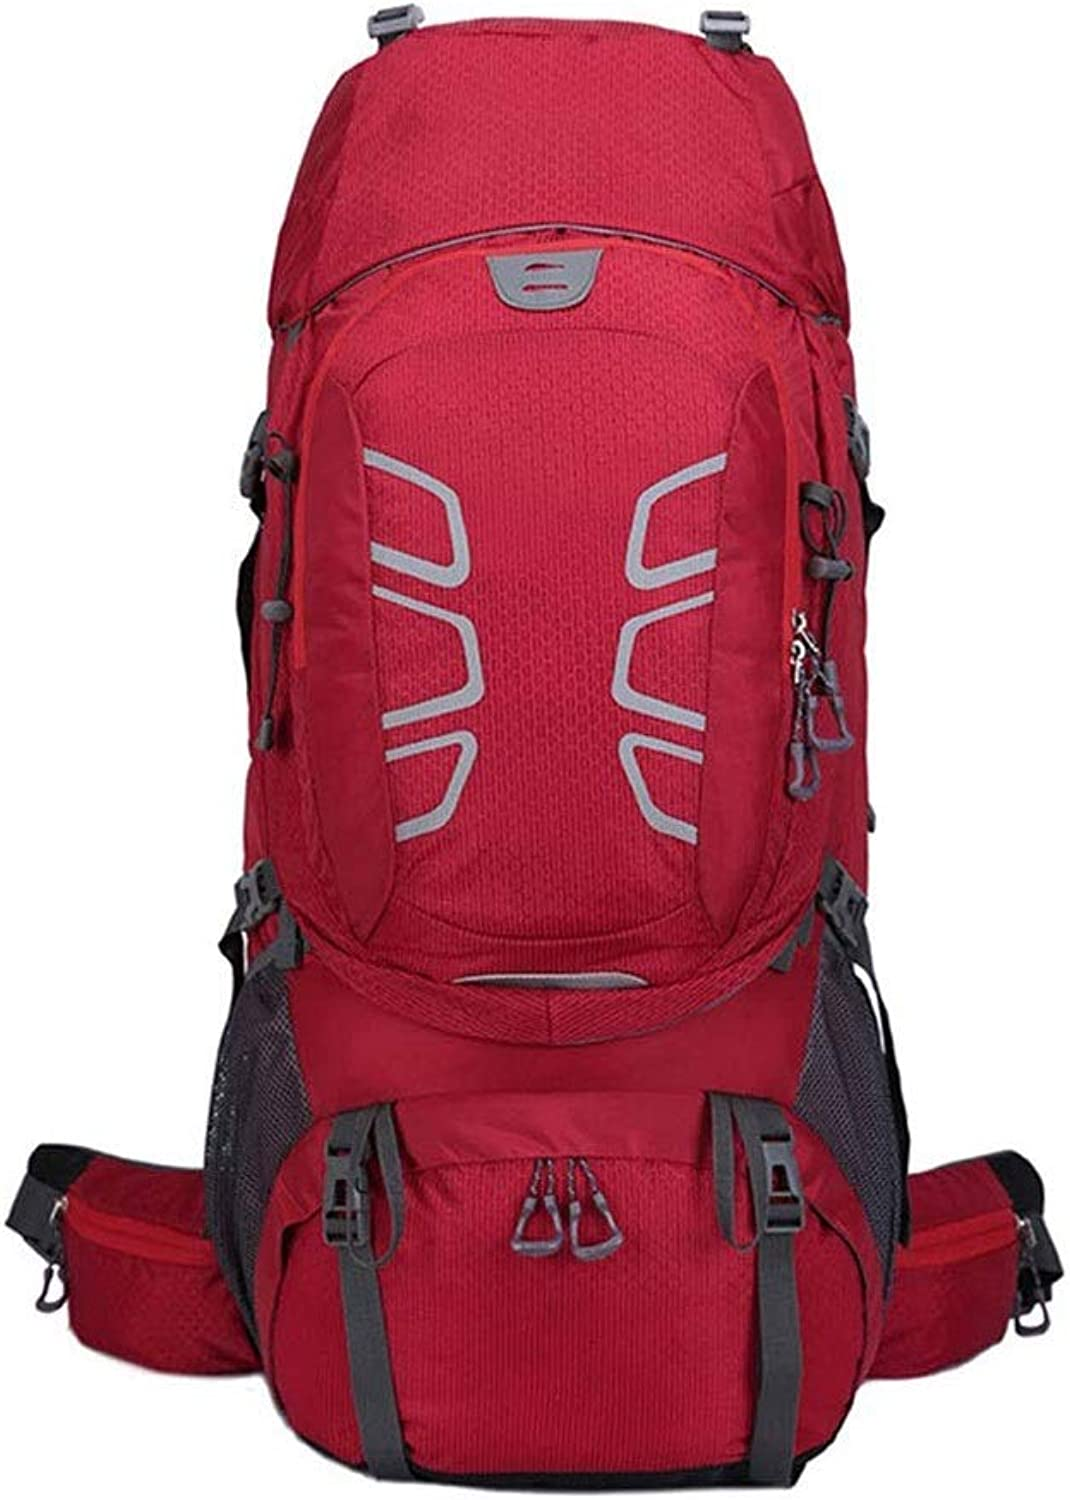 LZRDZSW Hiking Backpack 60L Waterproof Outdoor Backpack Women and Men Bag Camping Mountaineering Backpack Sport WaterRepellent Casual Daypack for Travel Business College (color   Red)